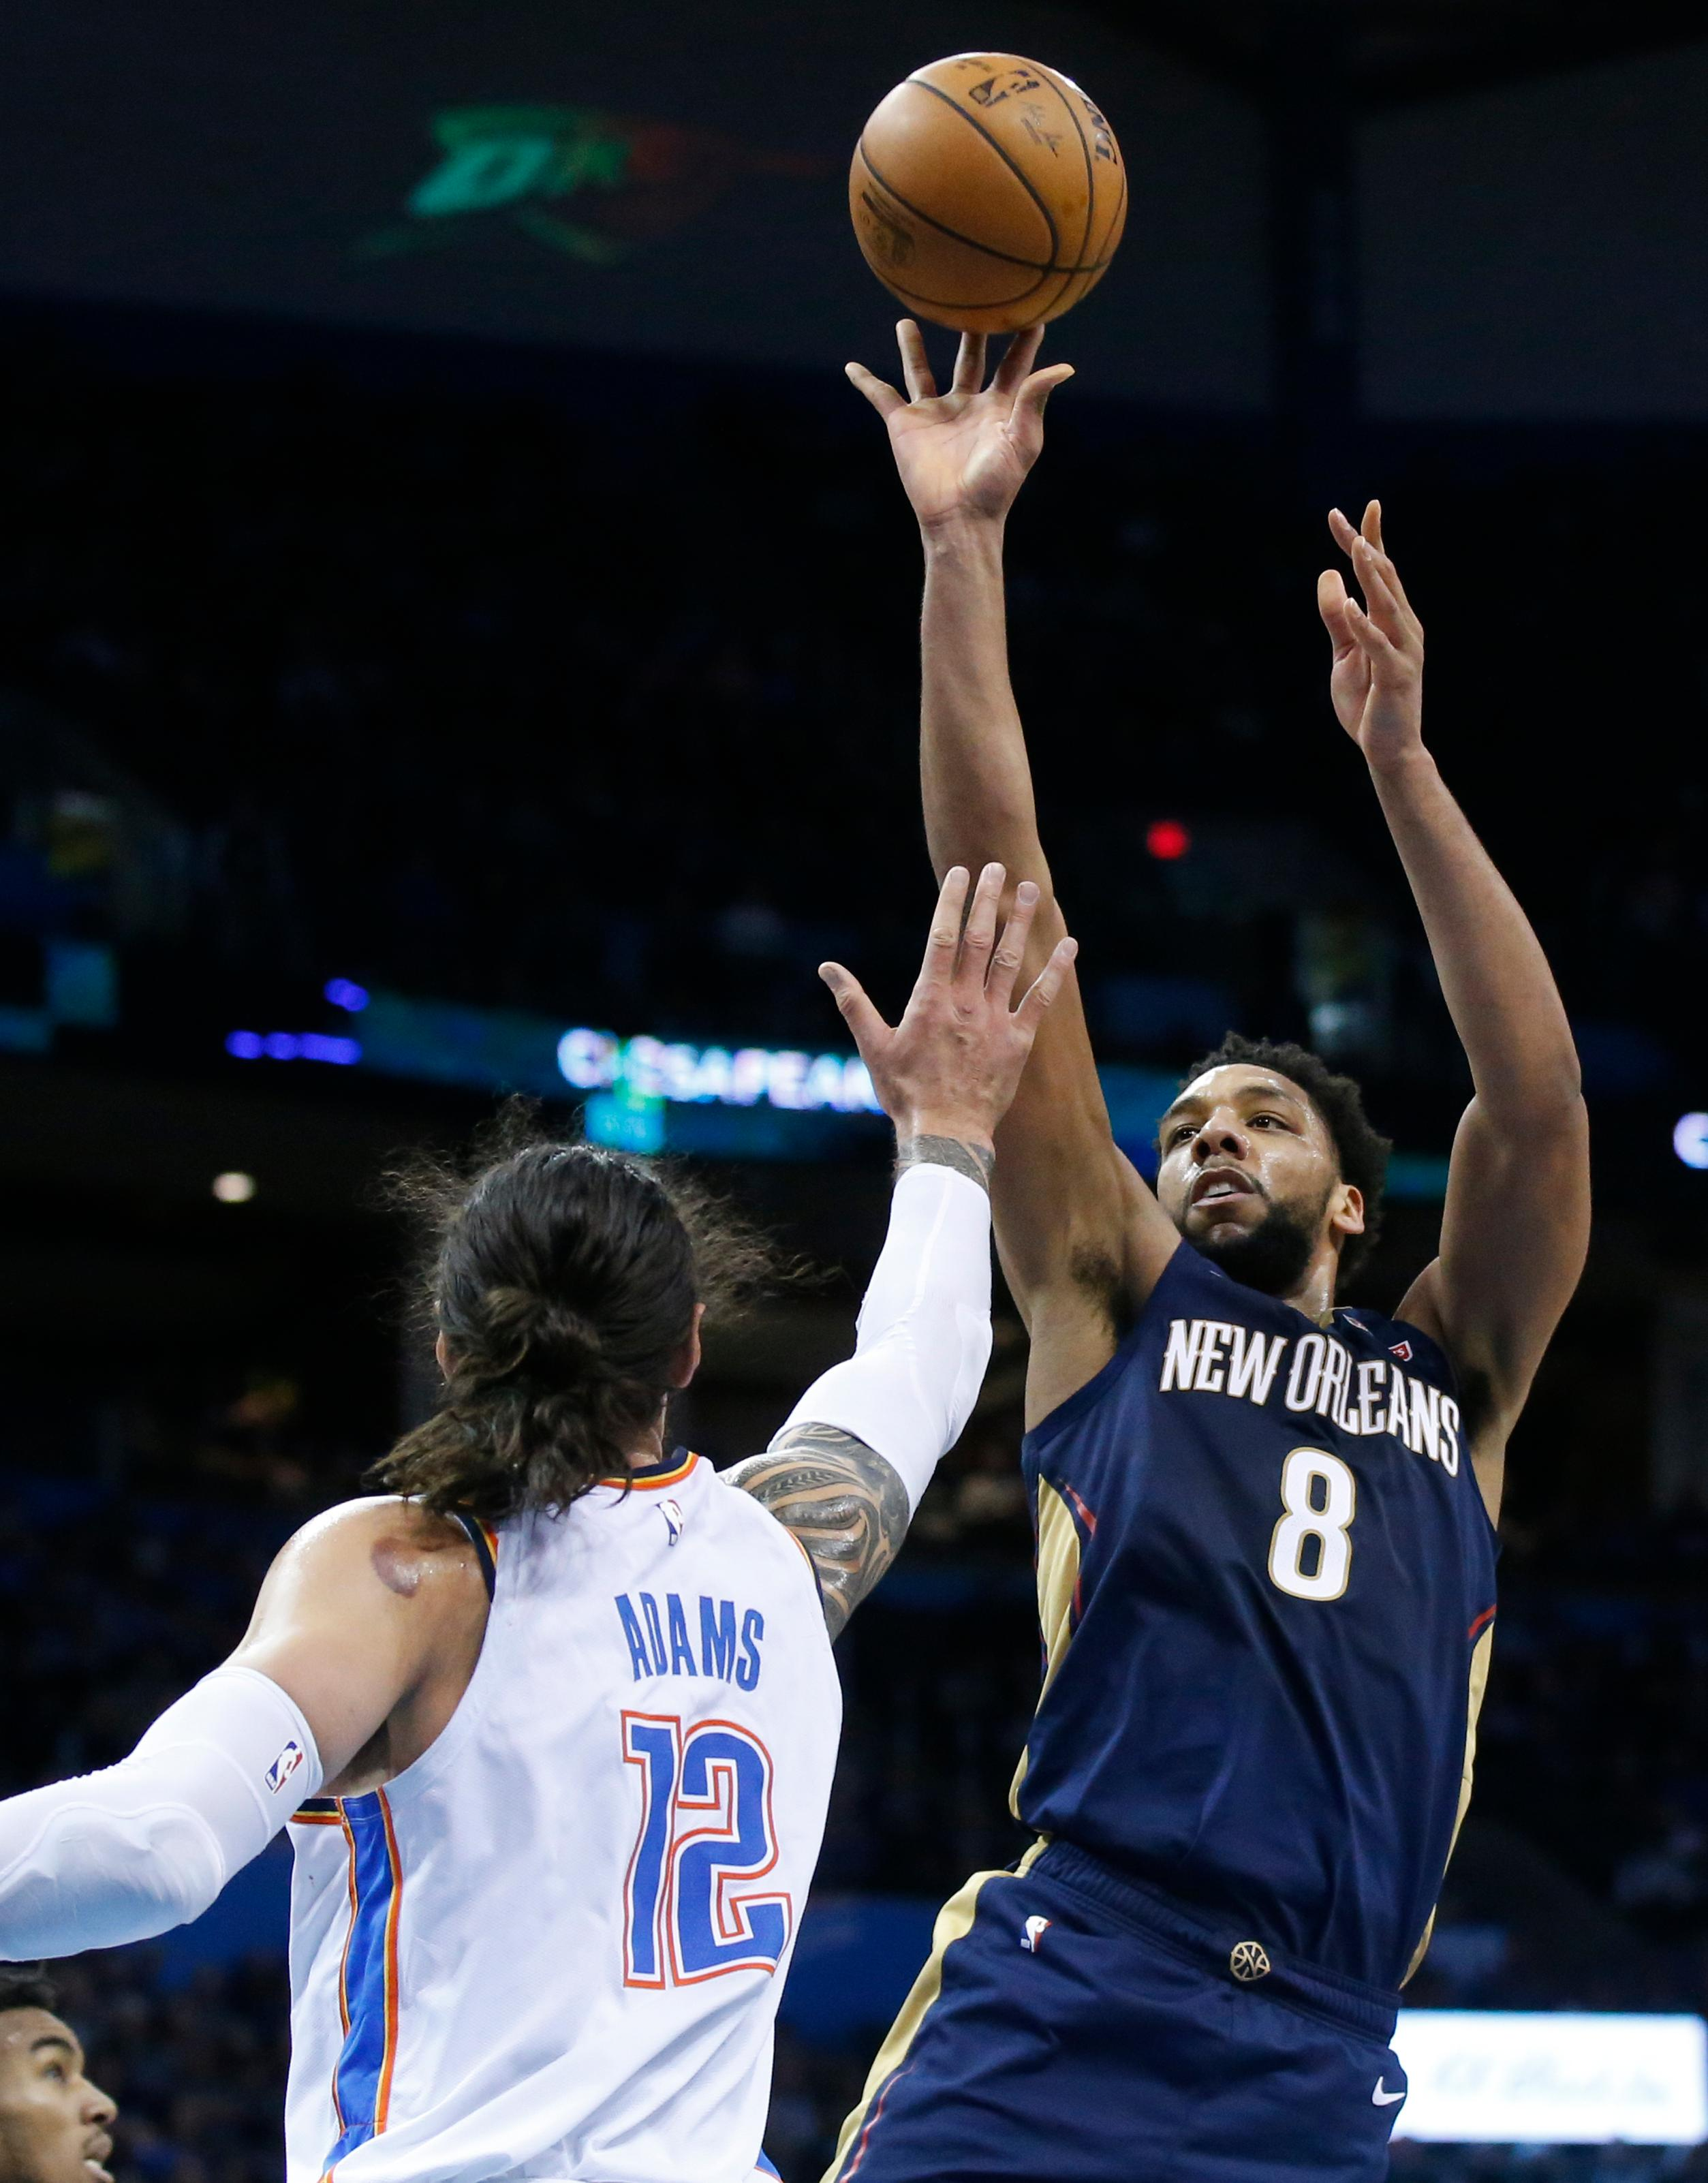 New Orleans Pelicans center Jahlil Okafor (8) shoots over Oklahoma City Thunder center Steven Adams (12) during the first half of an NBA basketball game in Oklahoma City, Thursday, Jan. 24, 2019. (AP Photo/Sue Ogrocki)